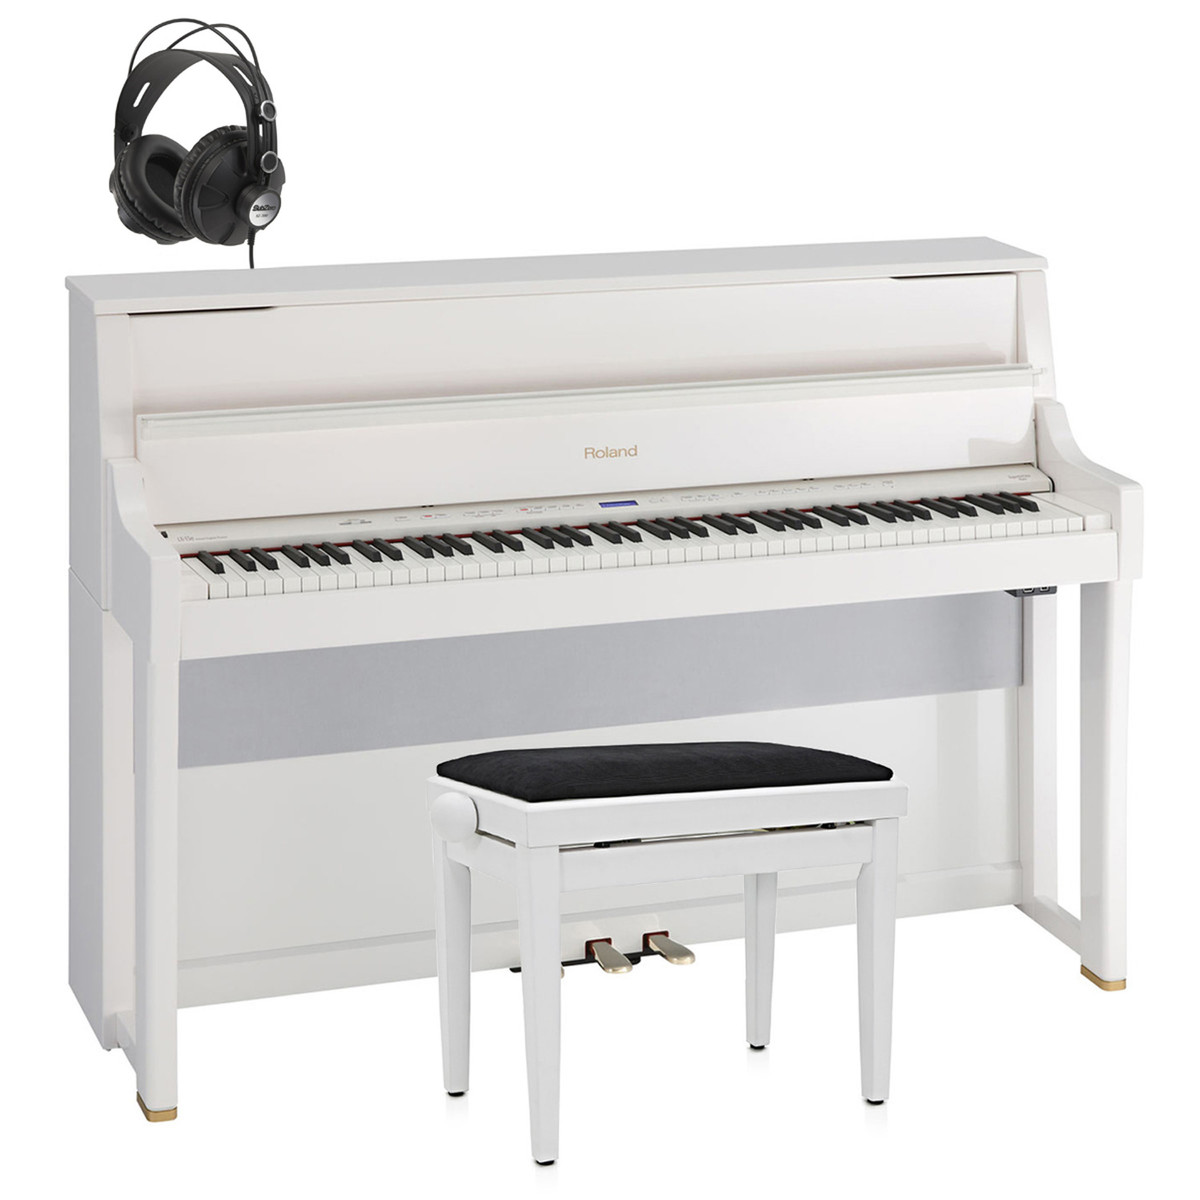 disc roland lx 15e piano num rique blanc tabouret libre et casque. Black Bedroom Furniture Sets. Home Design Ideas